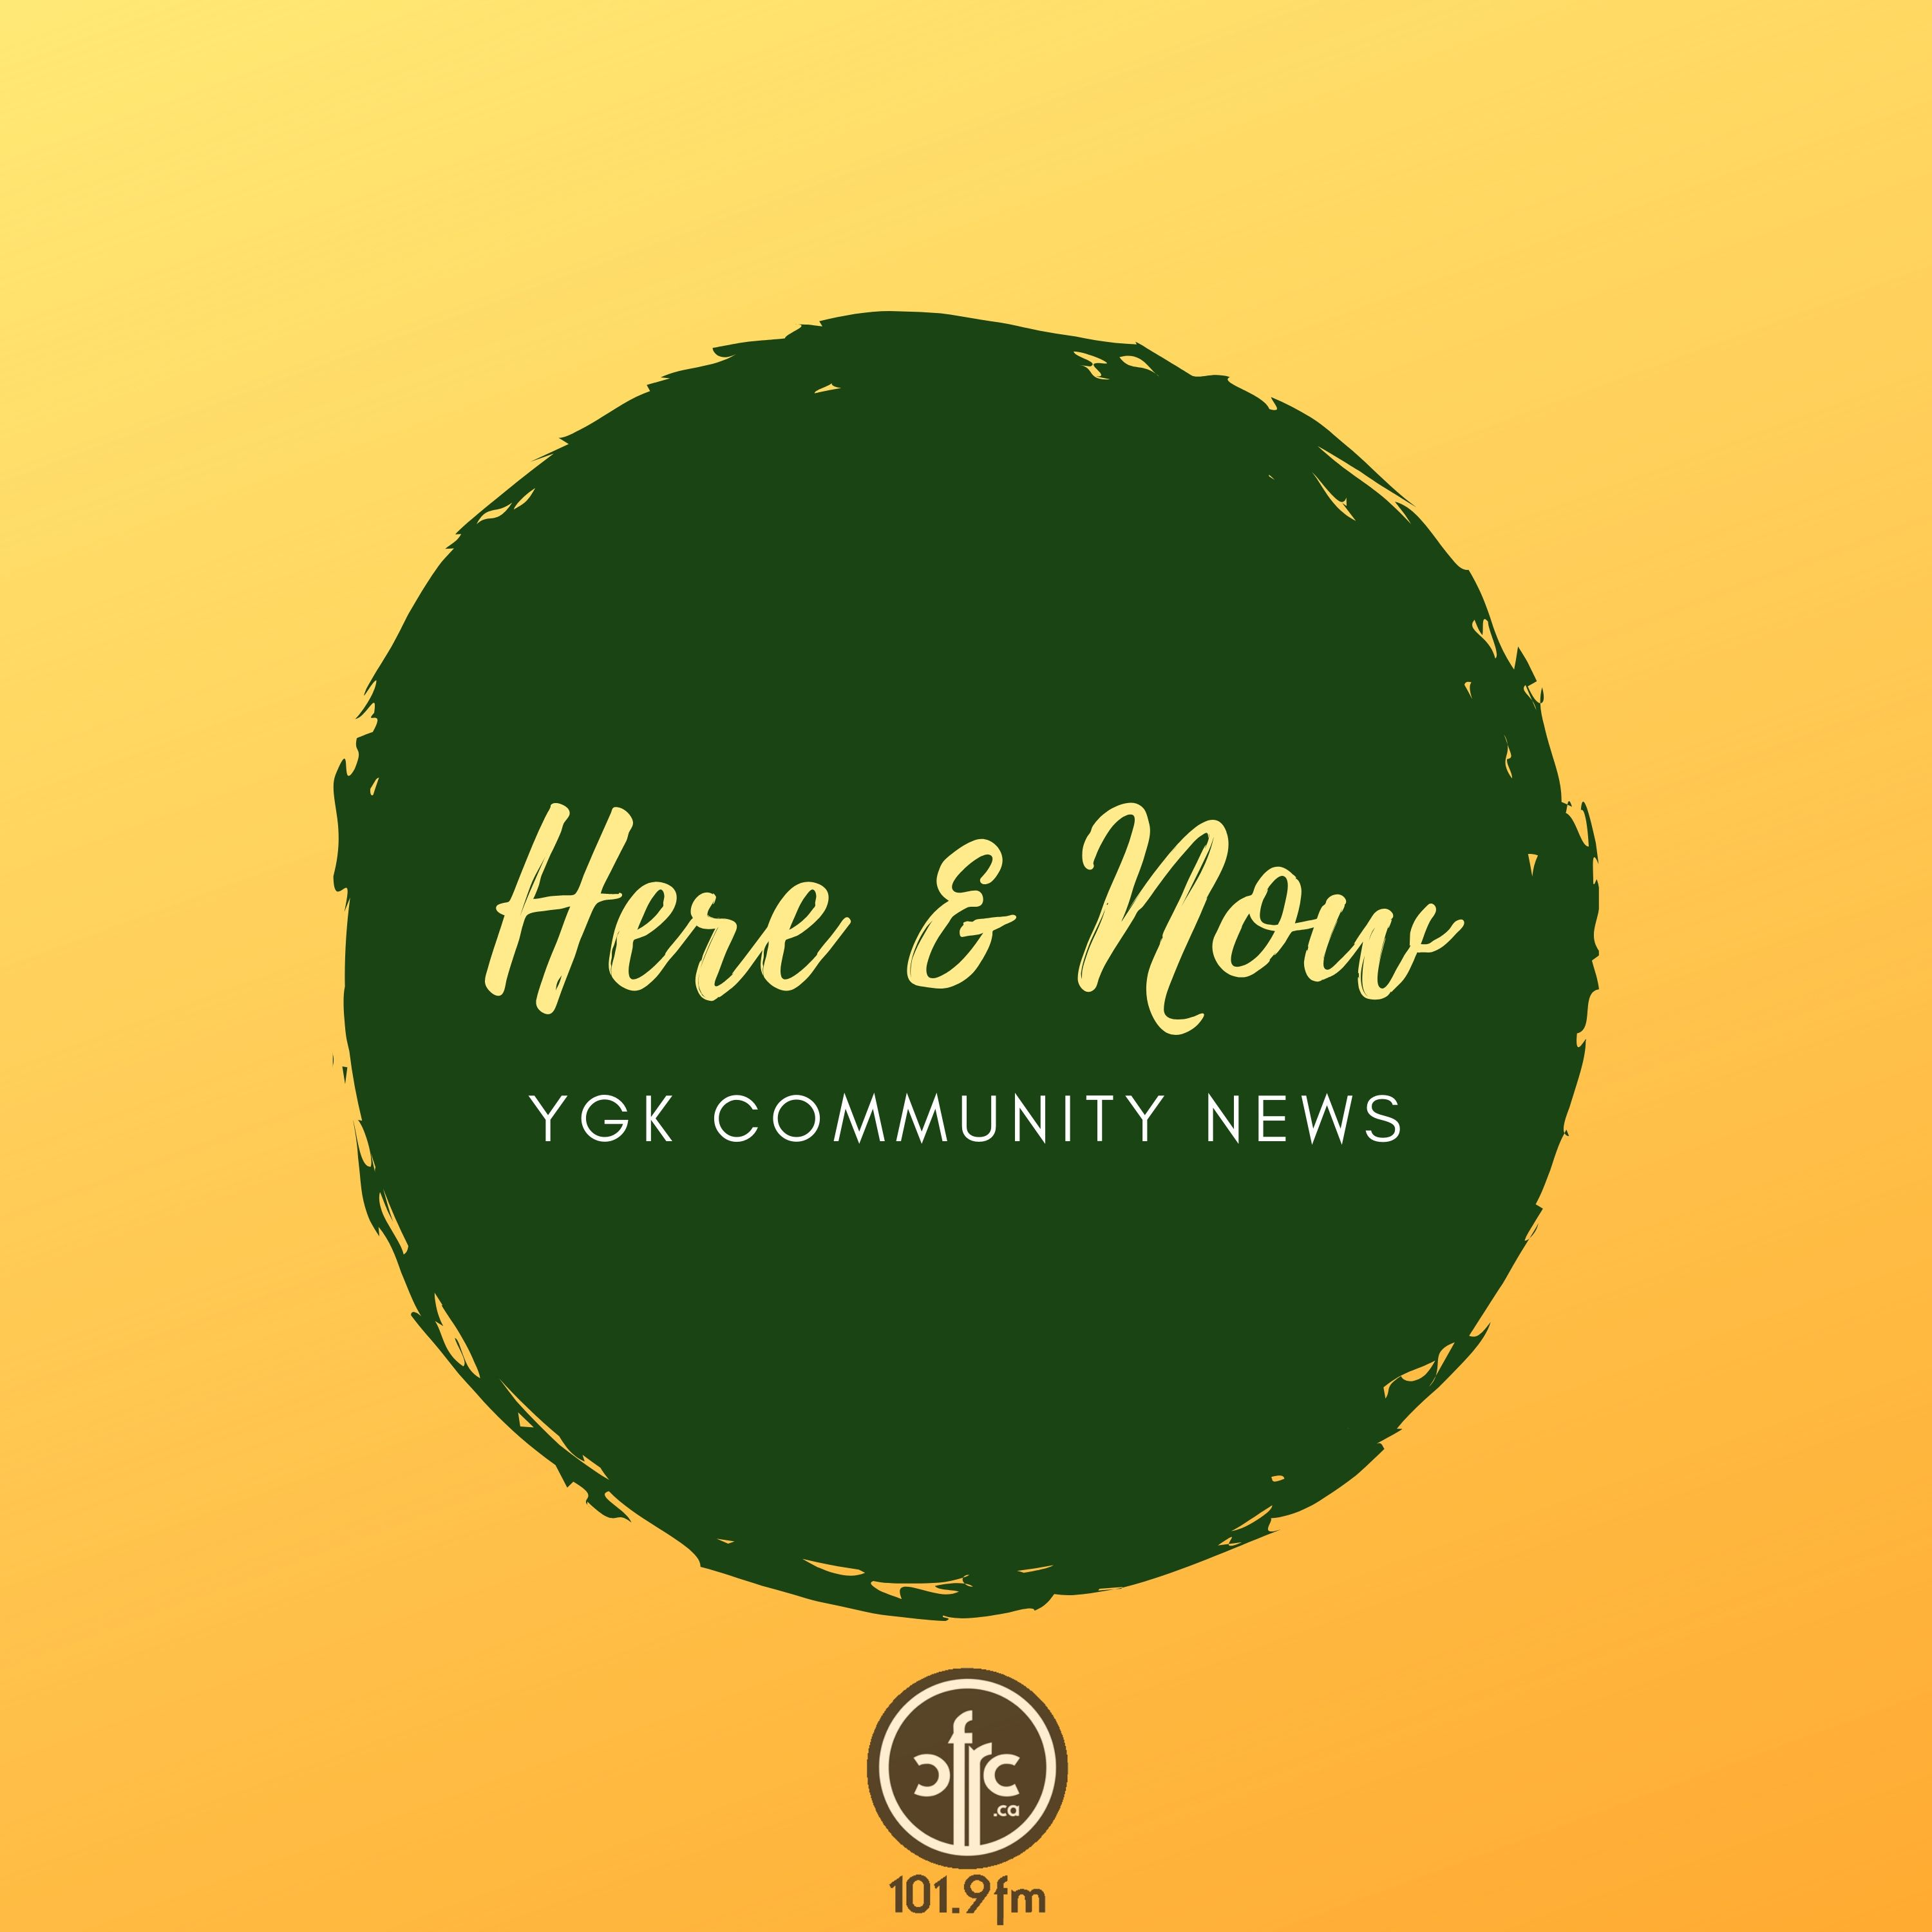 Here and Now: The YGK Community News Podcast – CFRC Podcast Network